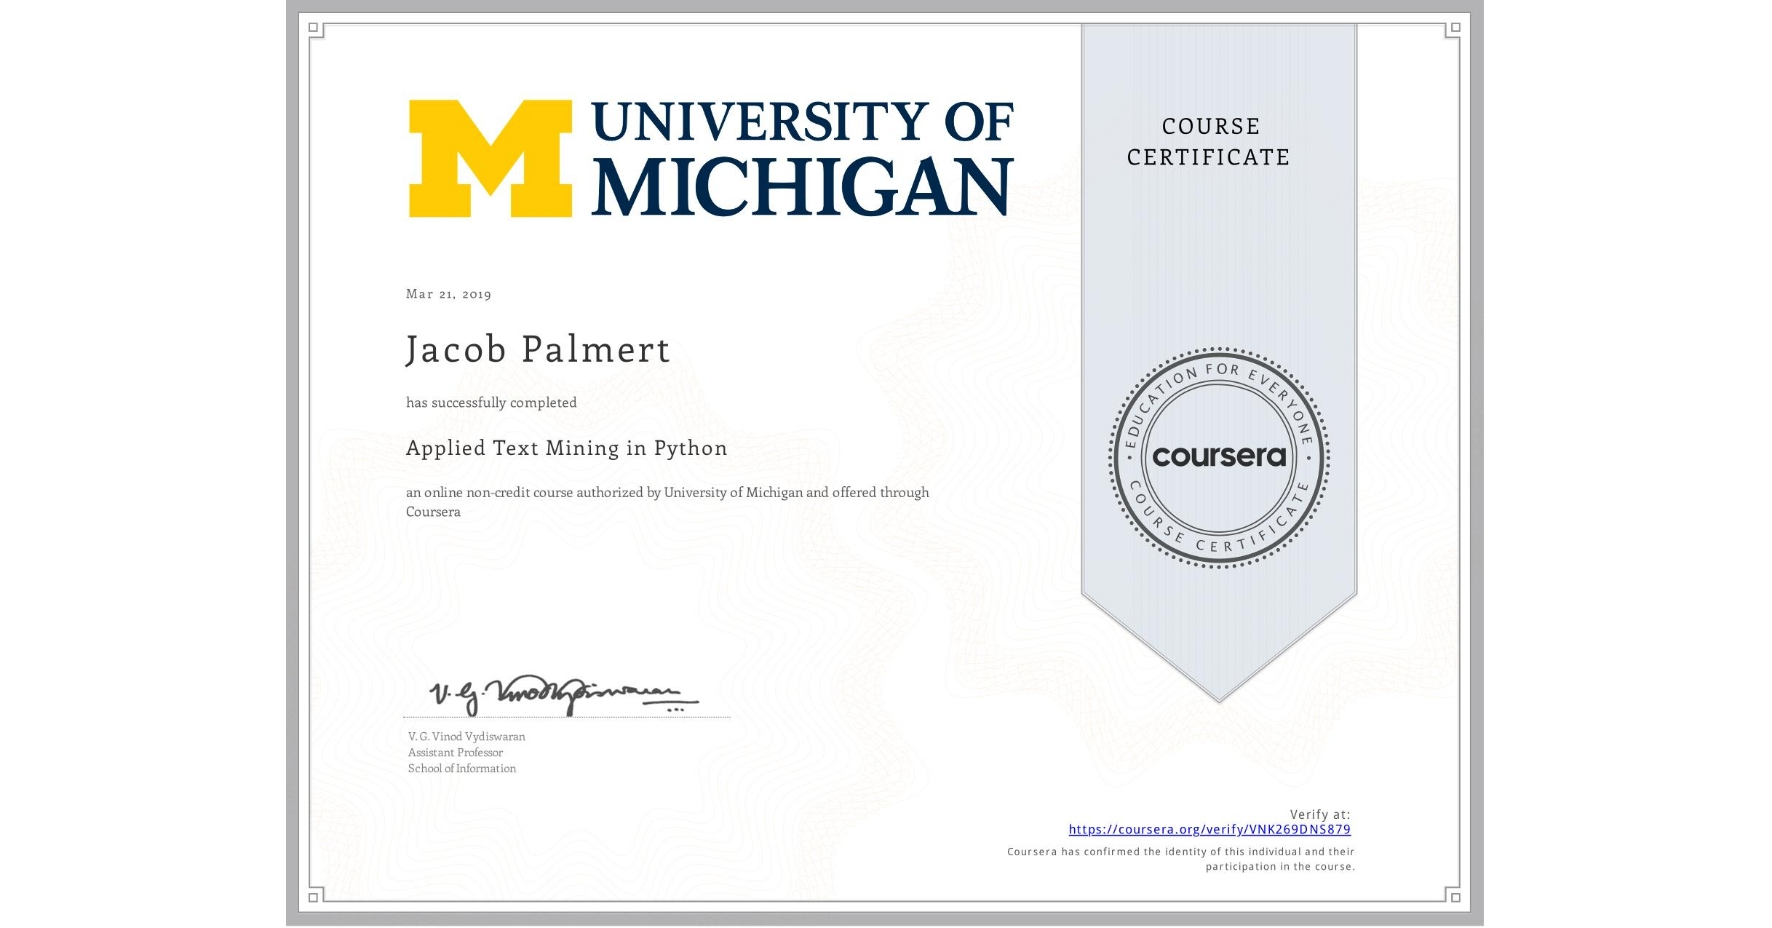 View certificate for Jacob Palmert, Applied Text Mining in Python, an online non-credit course authorized by University of Michigan and offered through Coursera